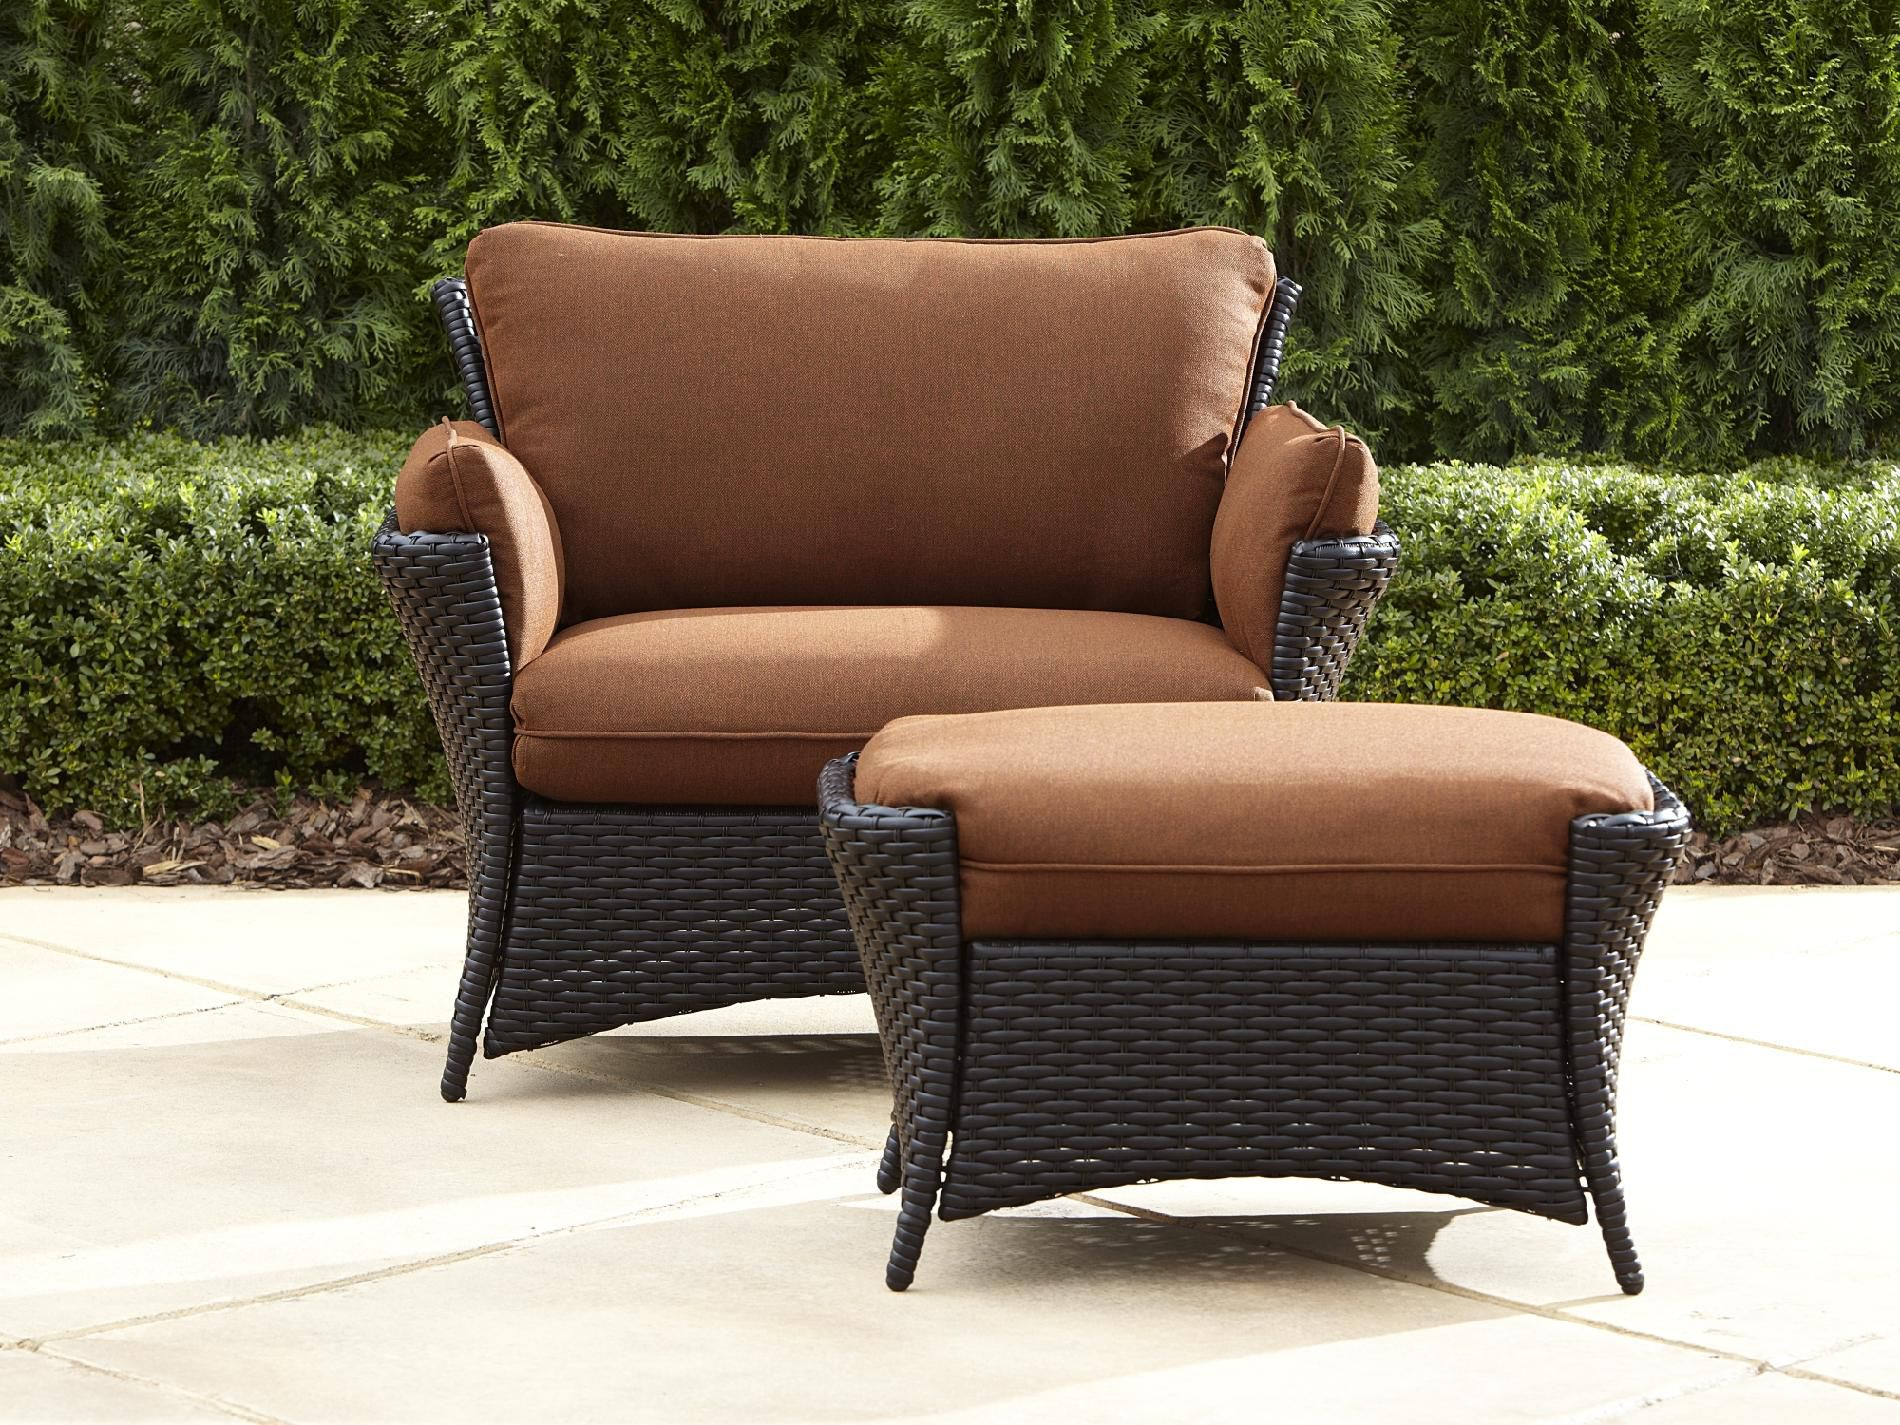 Lazy Boy Oversized Chairs with Ottomans